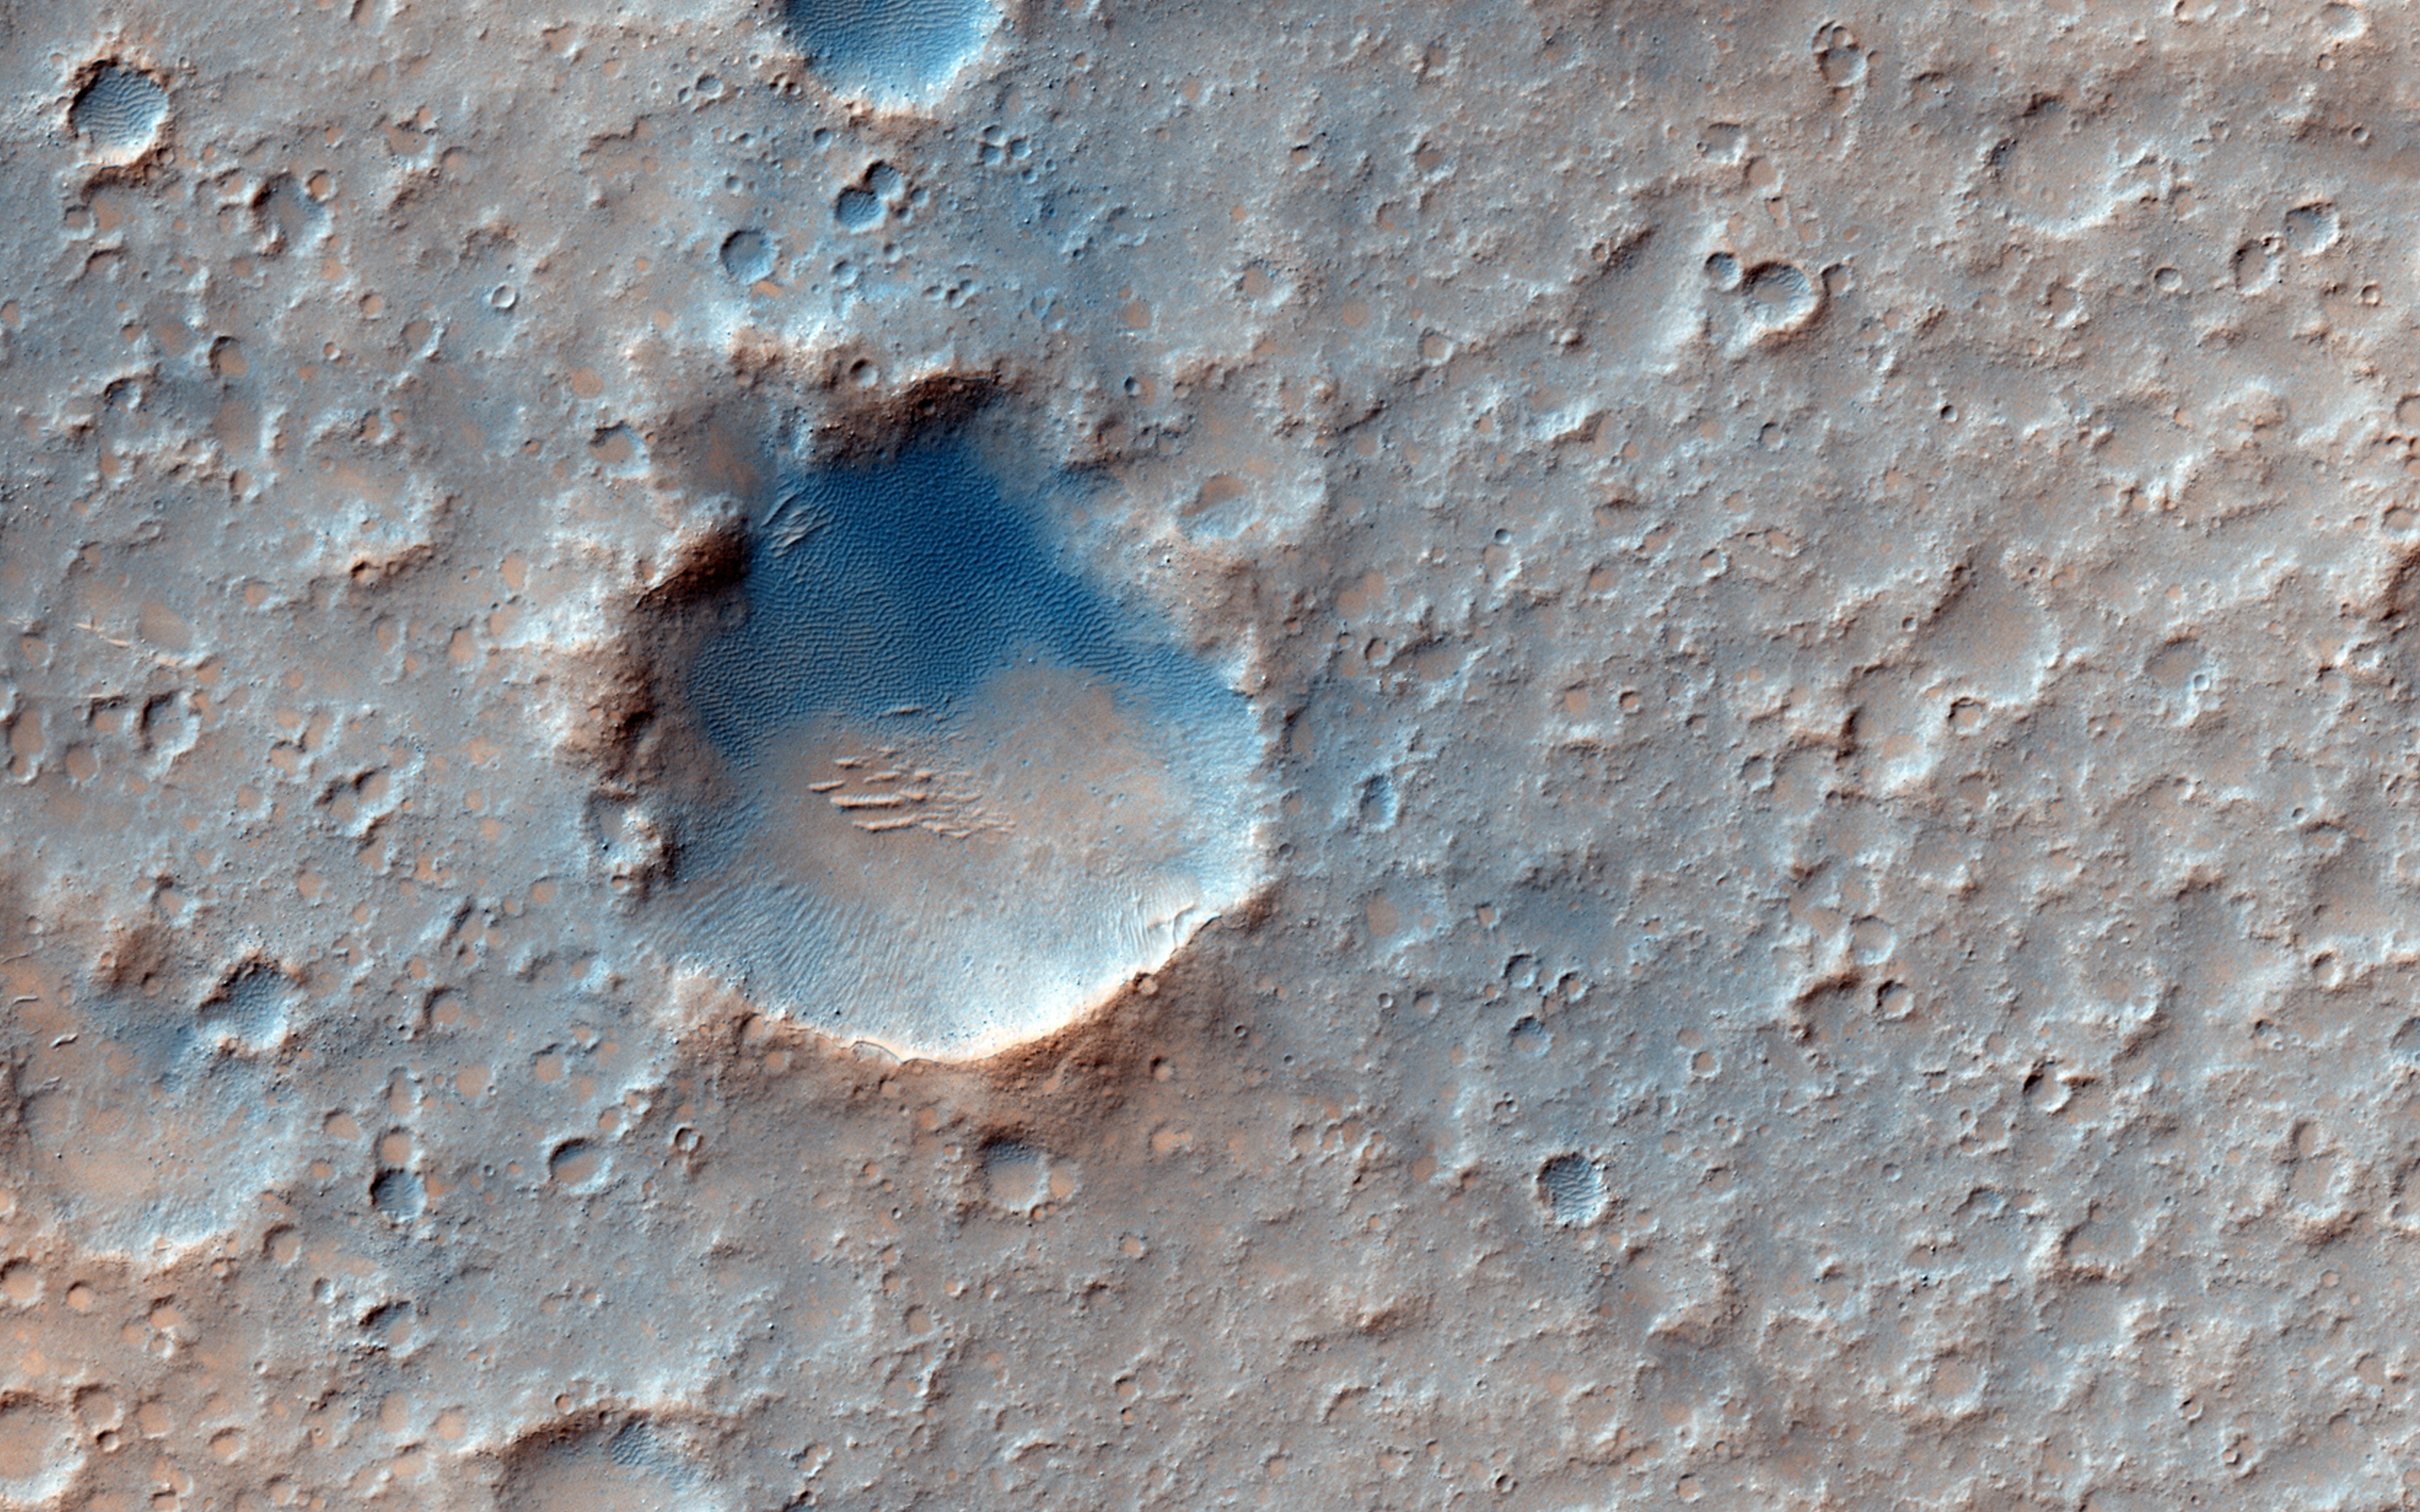 HiRISE | Mission 2020: A Candidate Landing Site in Gusev ...